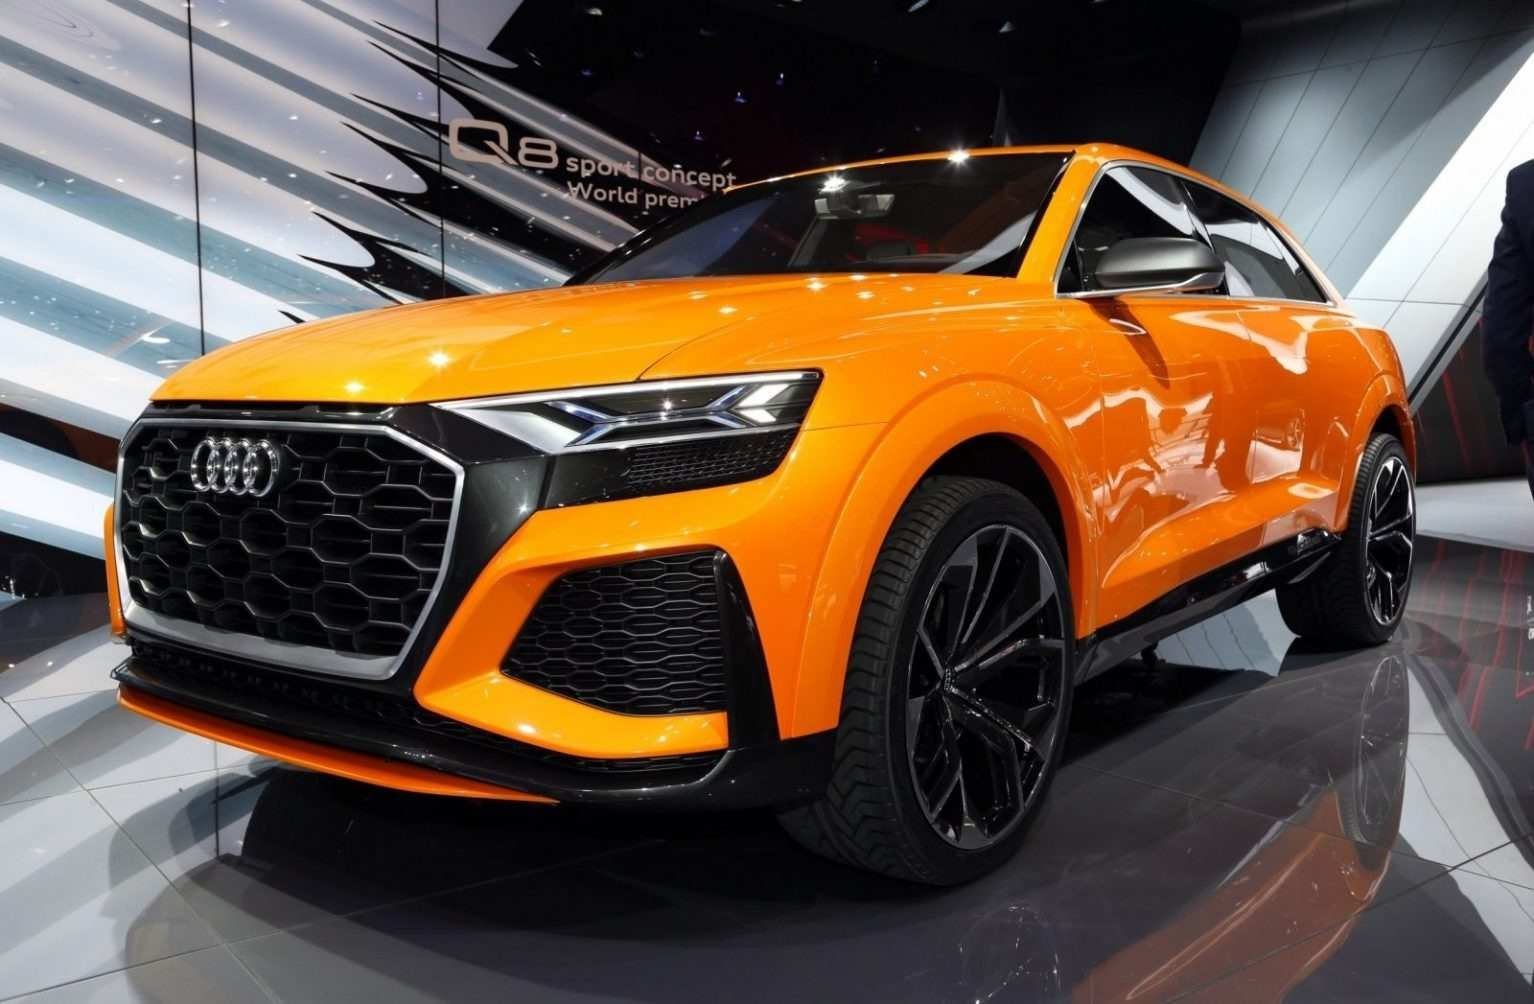 97 All New 2019 Audi Q8Quotes Release Date And Concept